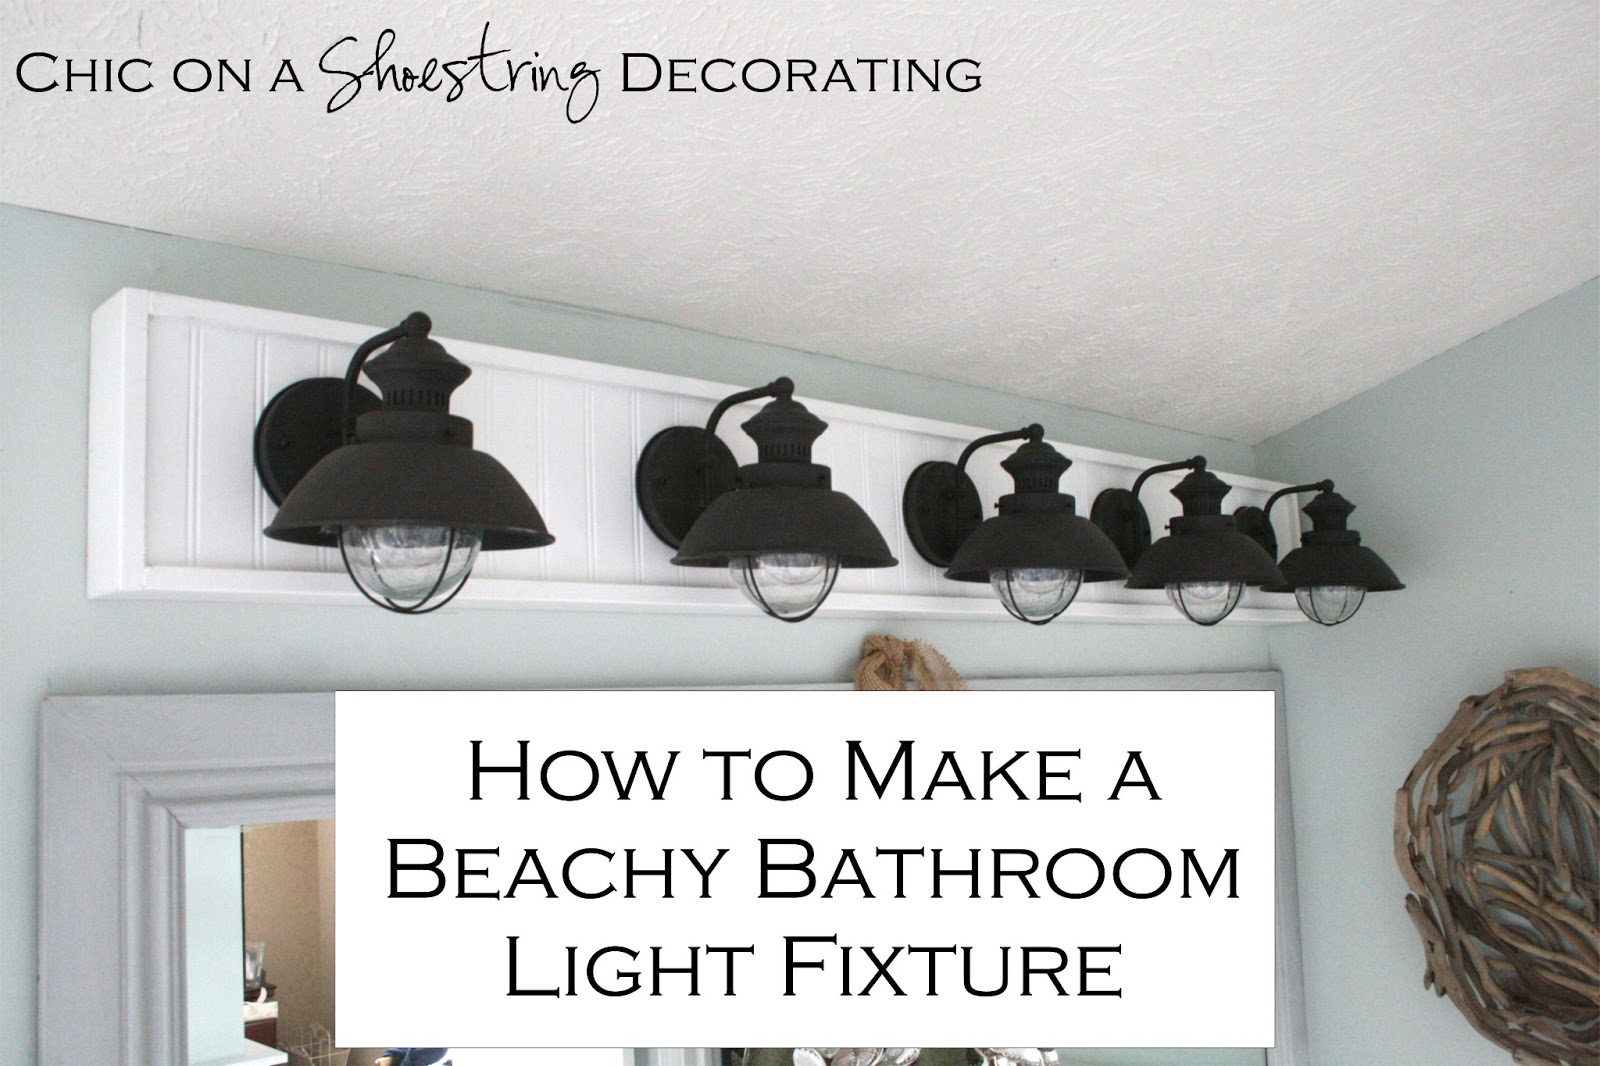 Beachy Light Fixtures for Bathrooms